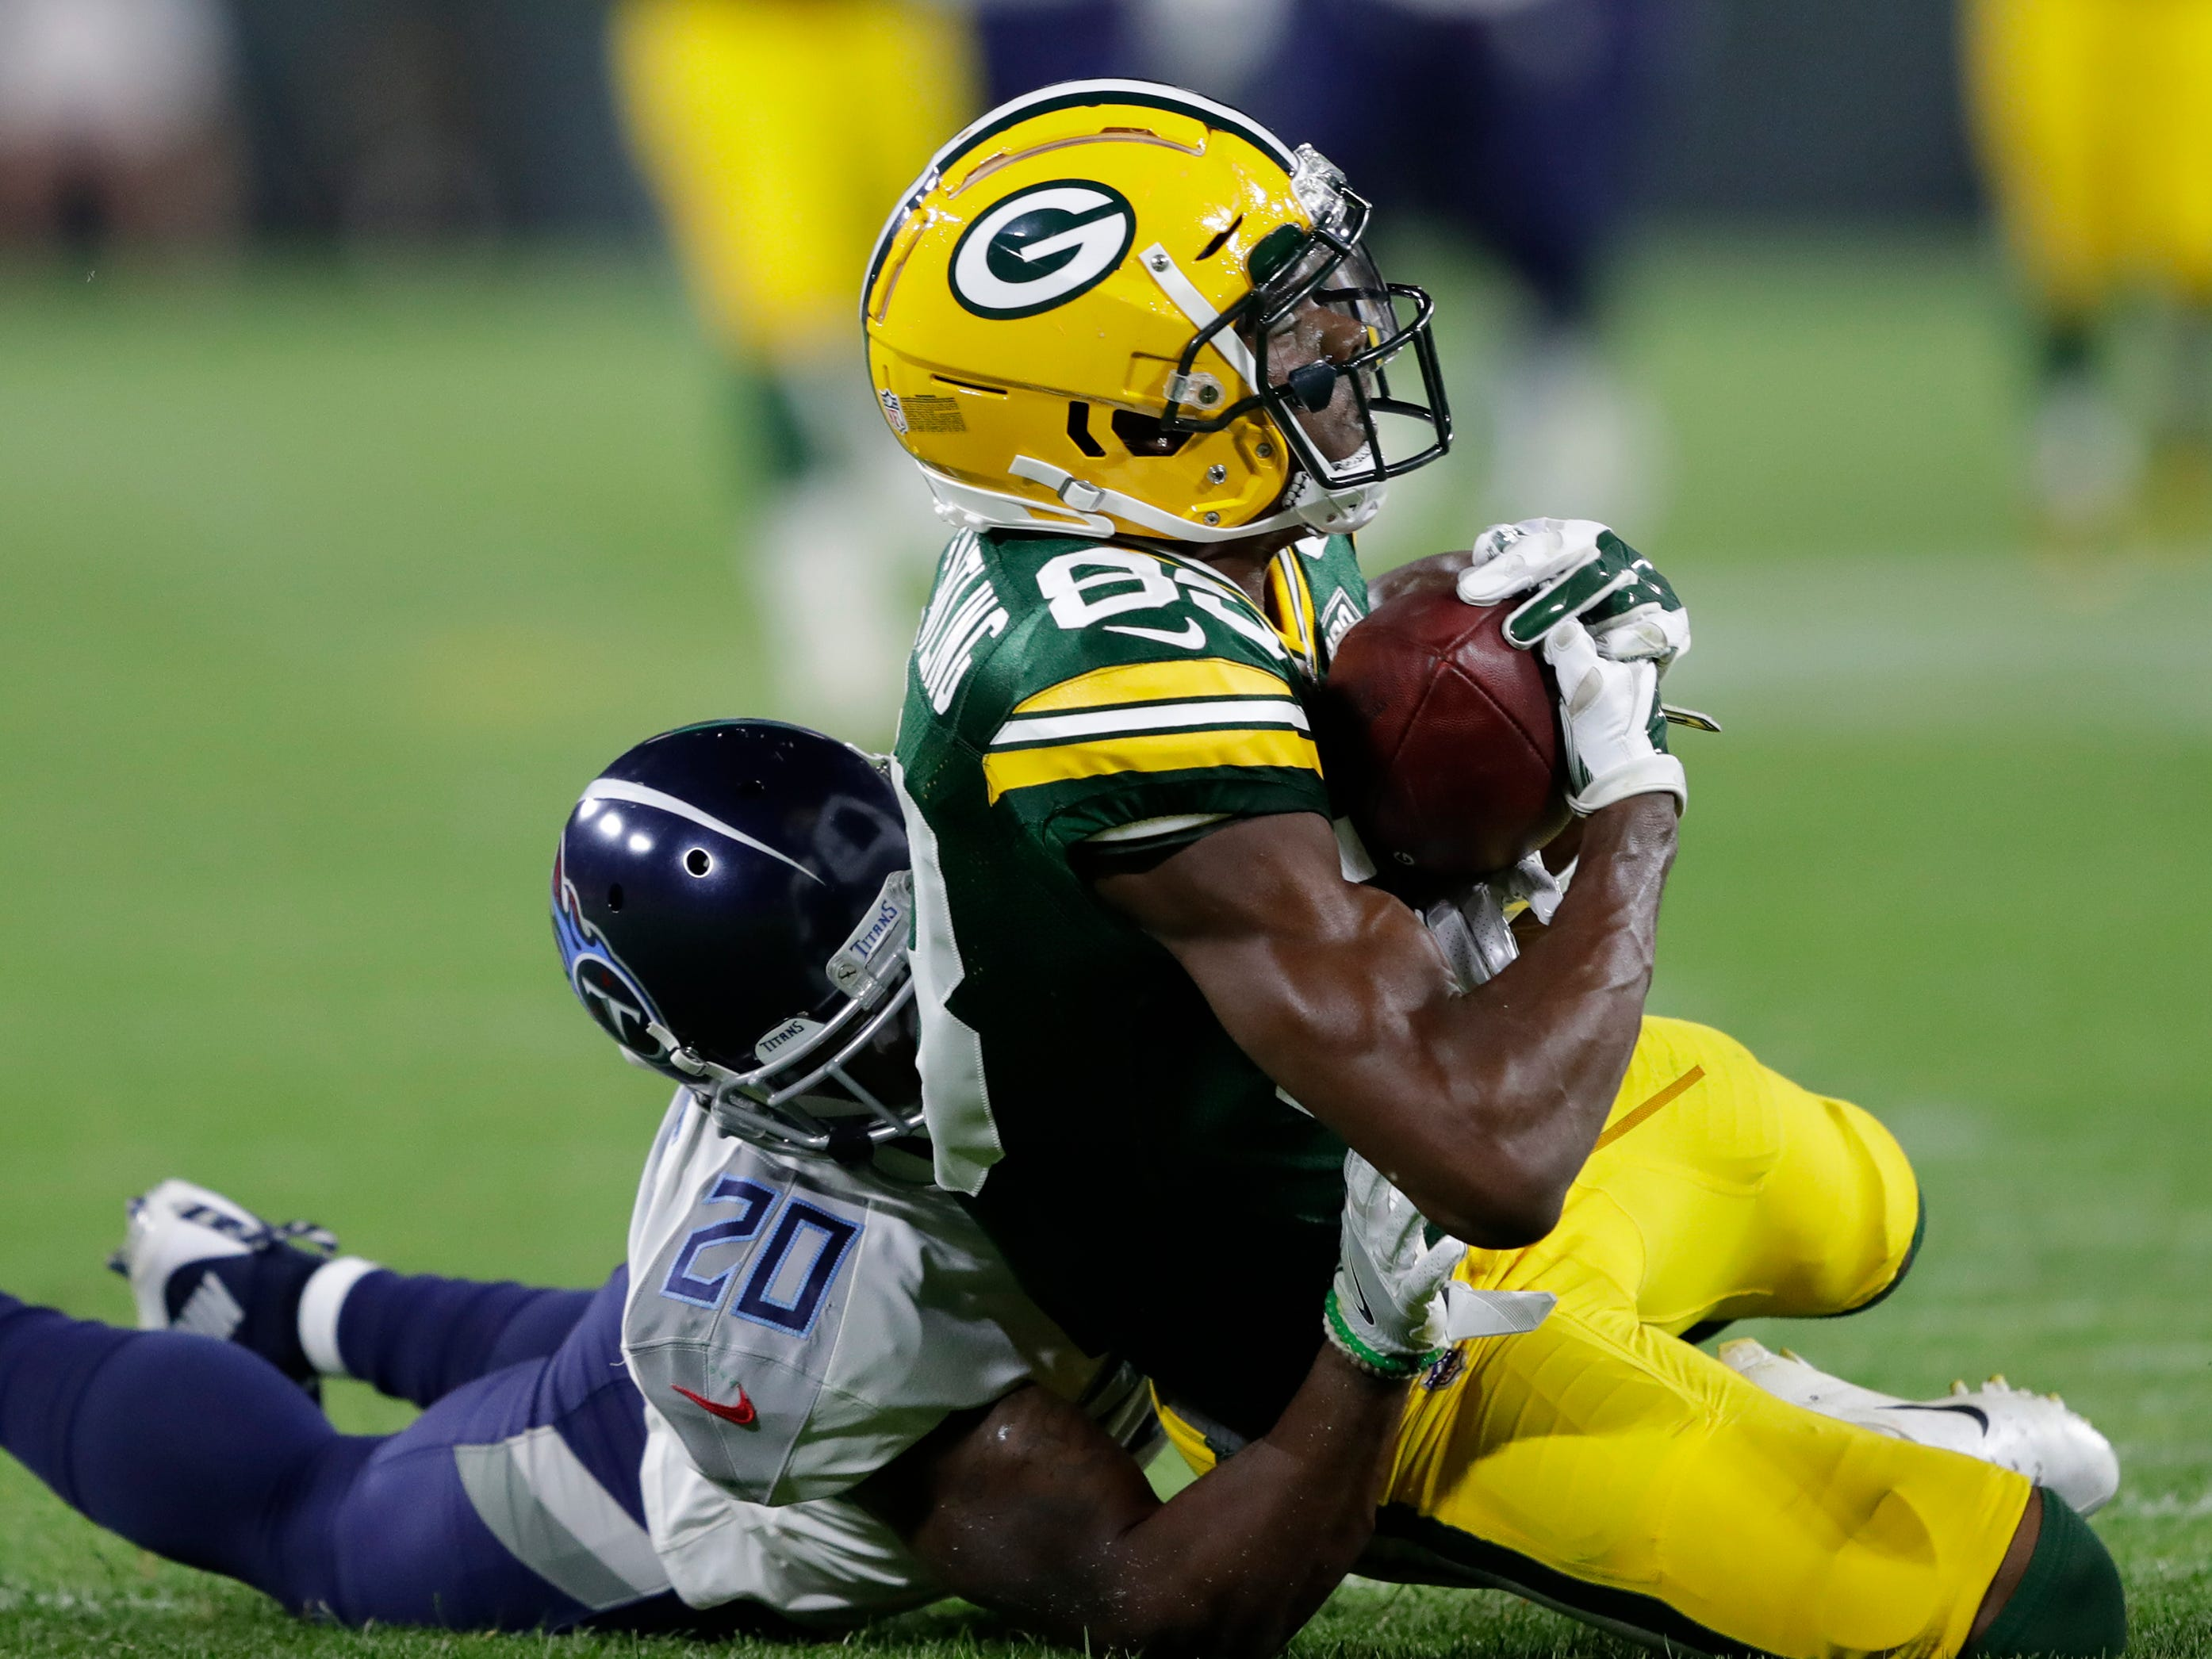 Green Bay Packers wide receiver Marquez Valdes-Scantling (83) pulls down a long reception against Tennessee Titans defensive back Demontre Hurst in the third quarter during their football game Thursday, August 9, 2018, at Lambeau Field in Green Bay, Wis.